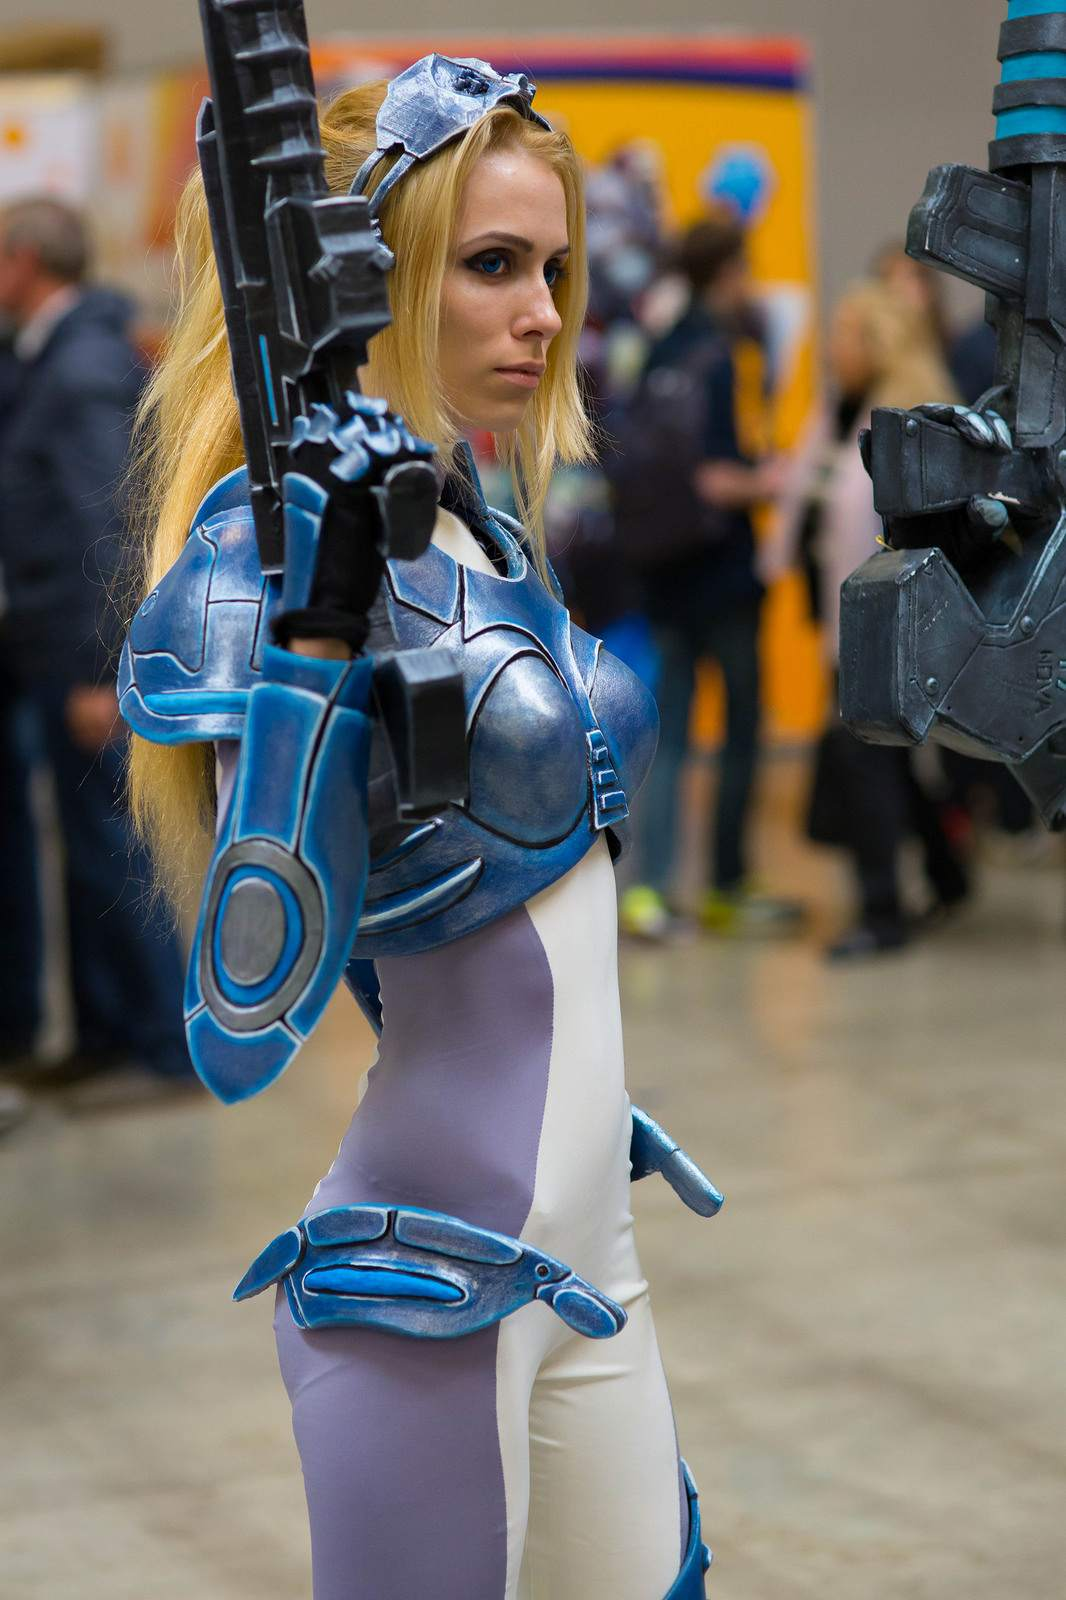 comiccon3 Comic Con Russia and IgroMir exhibition 2015